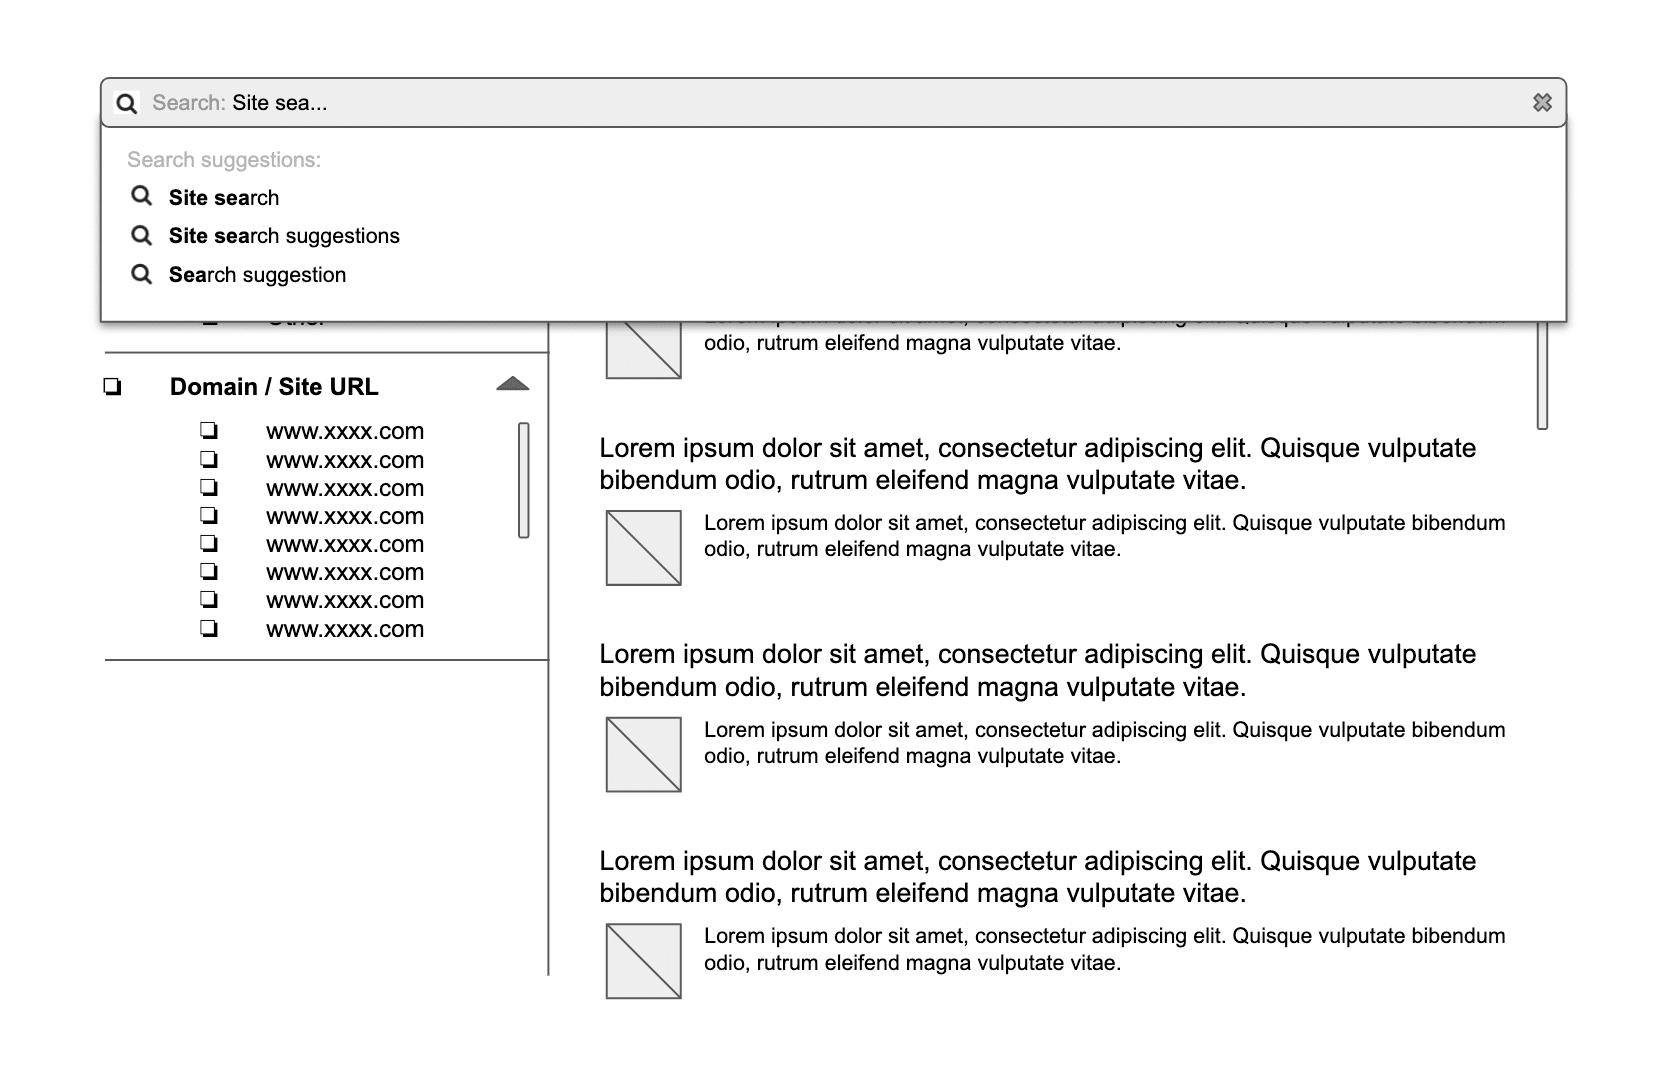 Site search wireframe example